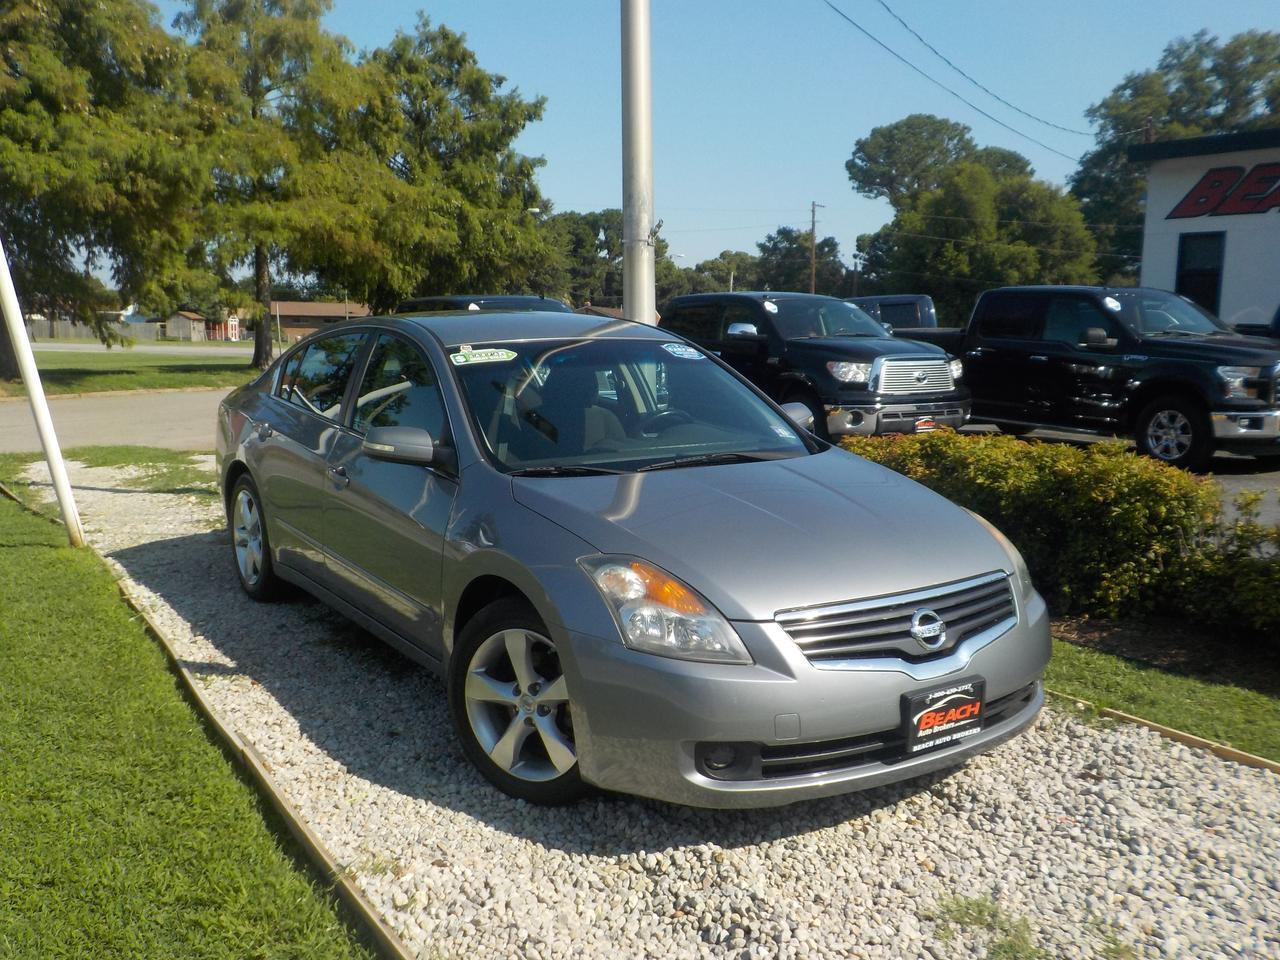 2009 NISSAN ALTIMA SE, WARRANTY, SINGLE CD PLAYER, KEYLESS ENTRY, KEYLESS START, AUX PORT!